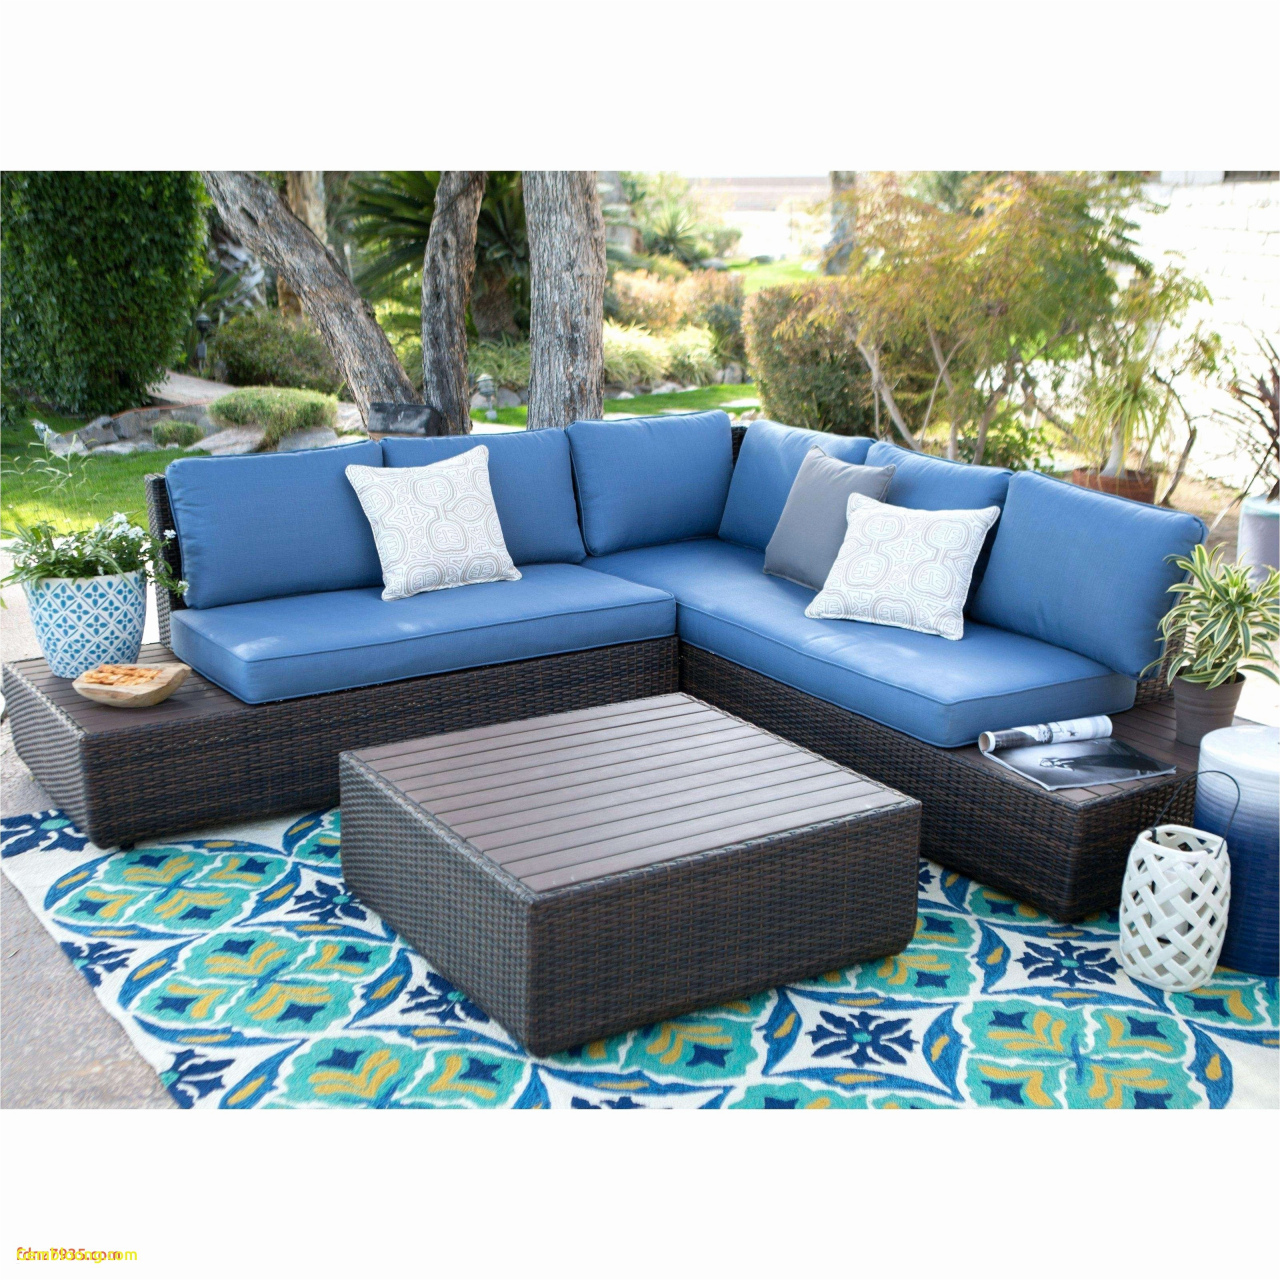 patio daybed 30 elegant costco outdoor patio furniture ideas durch patio daybed